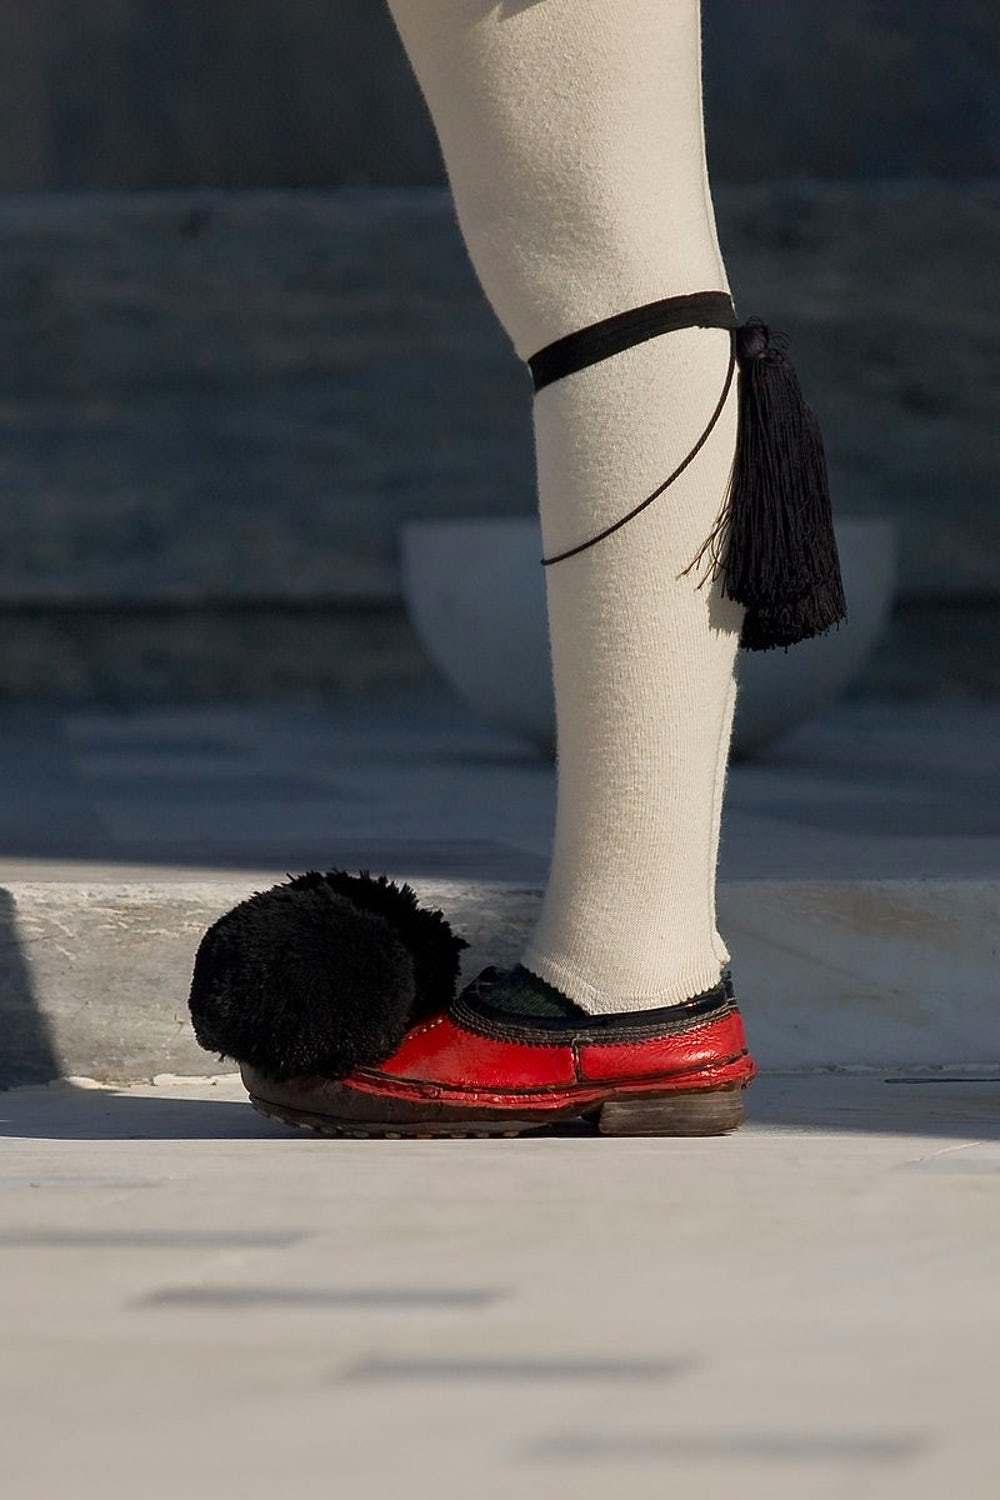 Greek tsarouhi shoes, which are part of regional dress and the traditional Greek guard uniform.